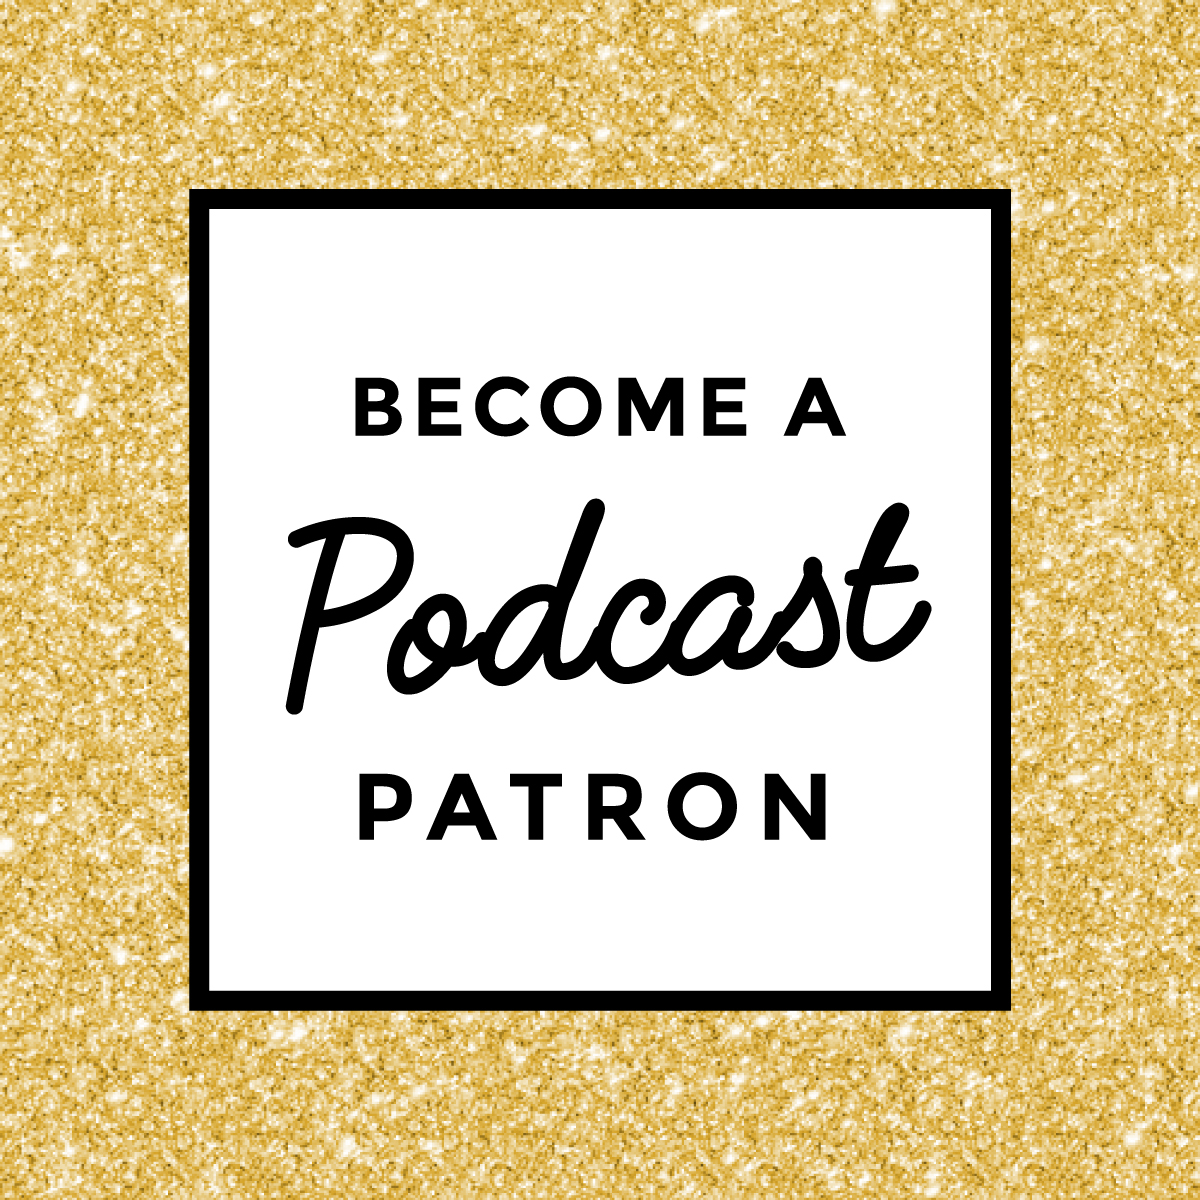 Become a Podcast Patron